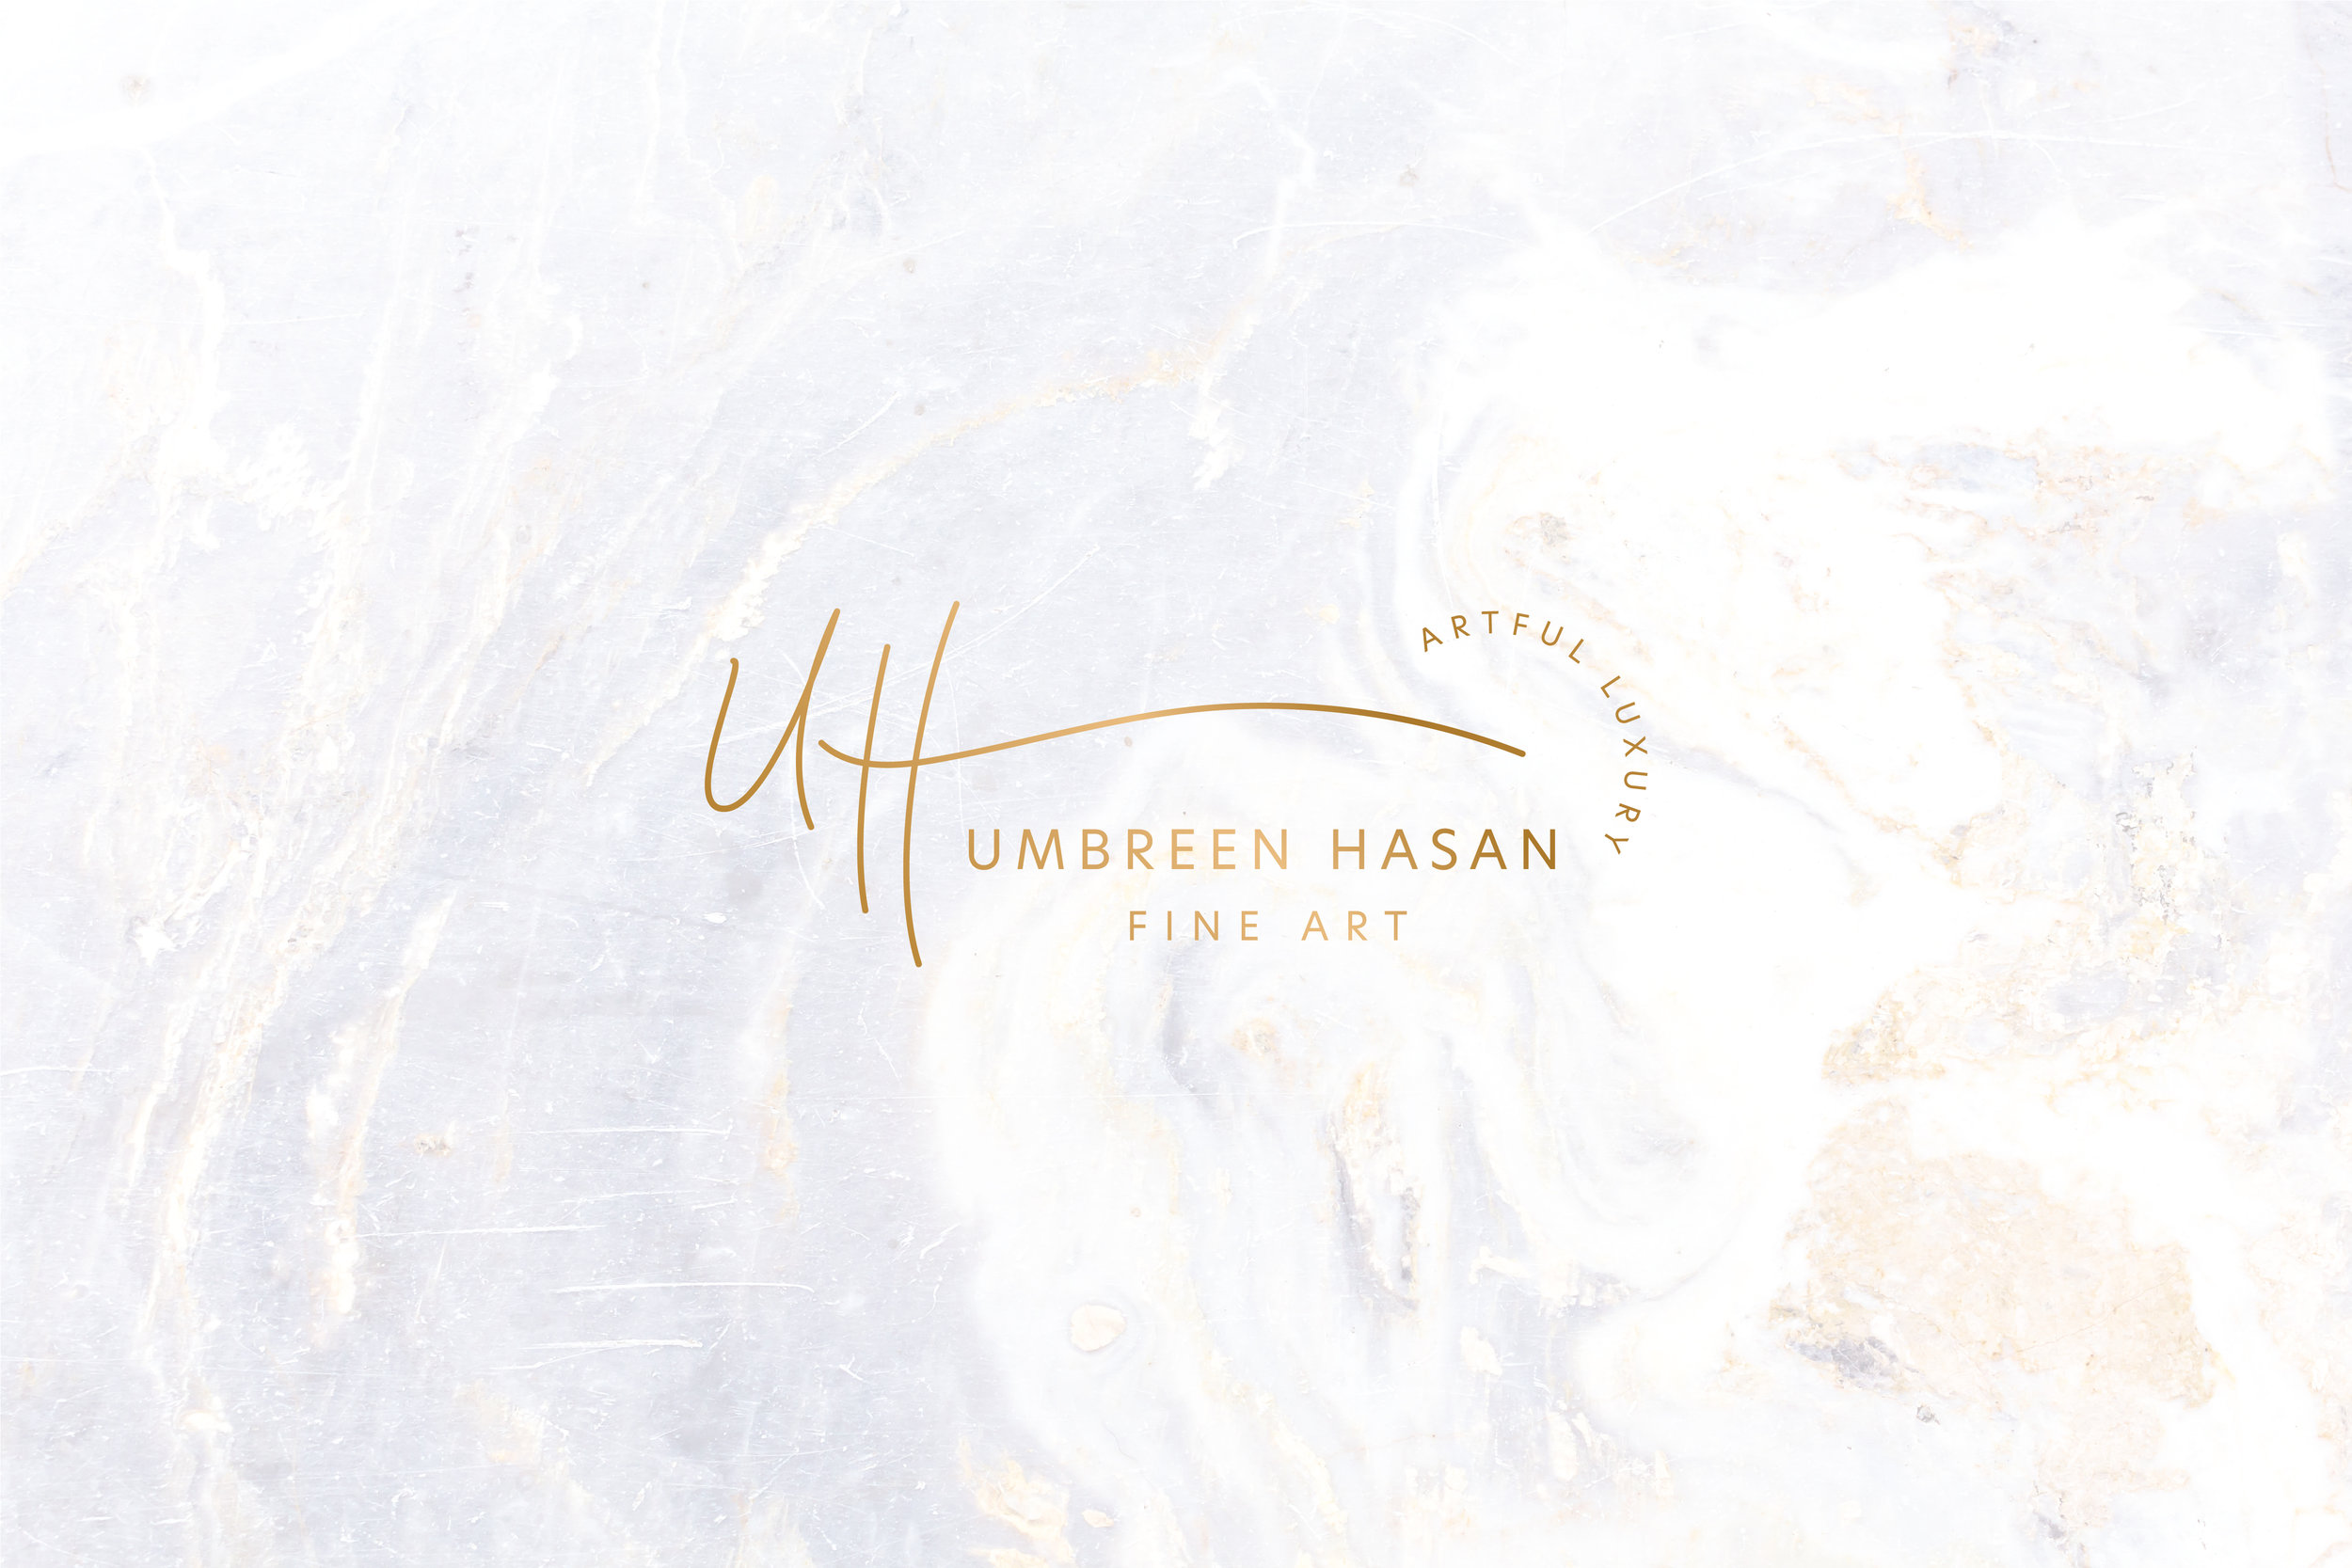 Branding & Website: Umbreen hasan